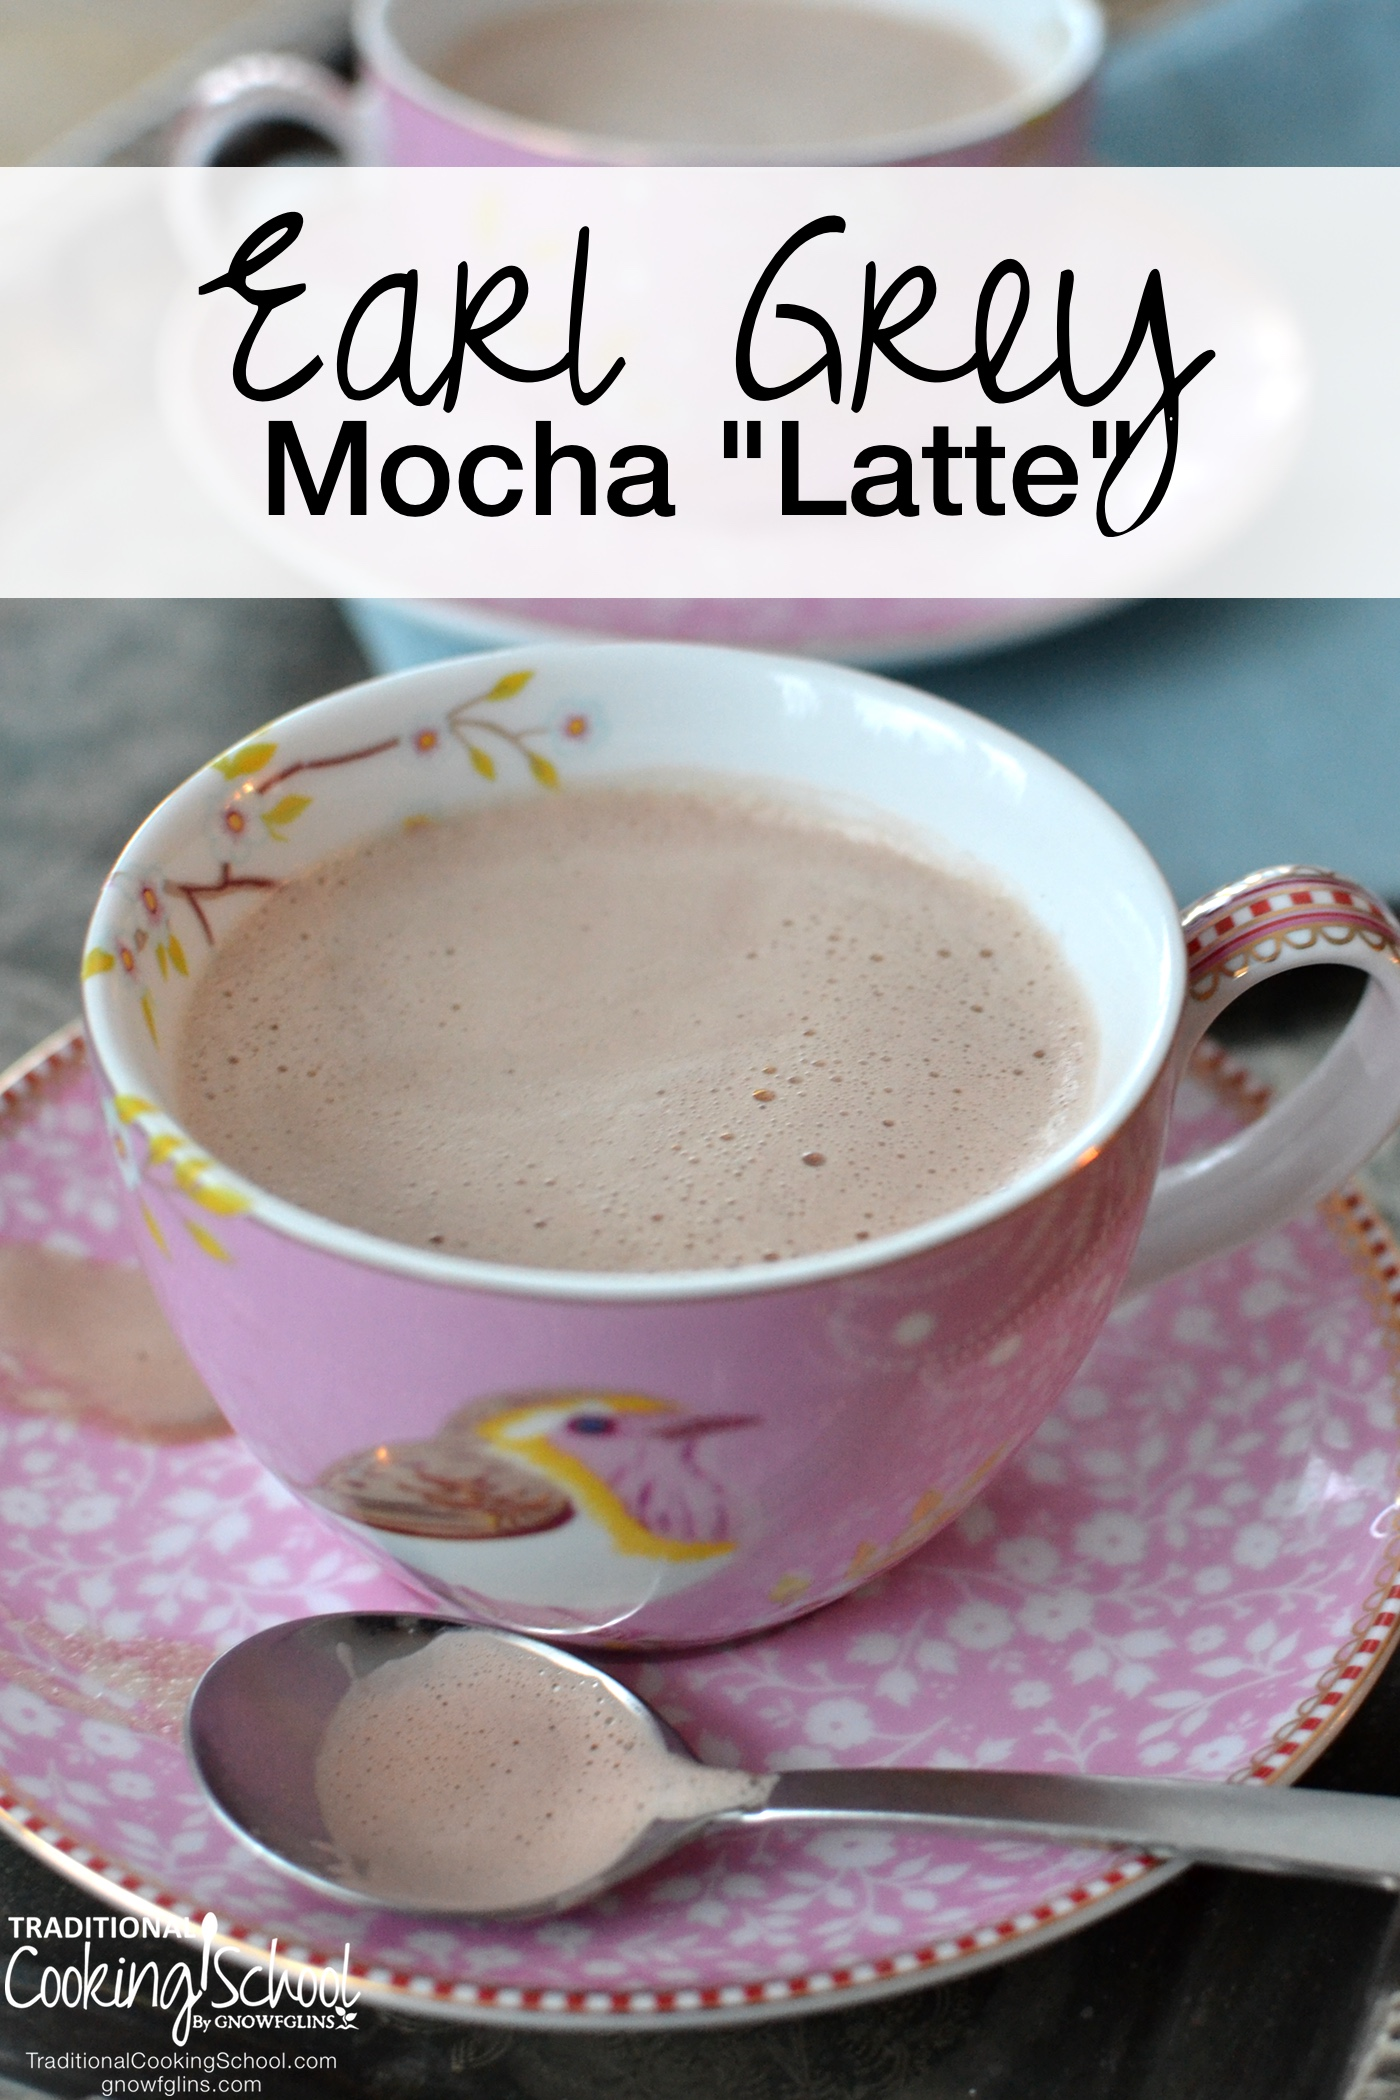 """Earl Grey Mocha """"Latte""""   I enjoy a good cup of coffee... Yet sometimes I crave a cup of tea. Not just any cup of tea, mind you, but a cup of Earl Grey -- with frothy milk, rich cocoa, raw honey, and a touch of vanilla extract. Who says a mocha latte has to be made with coffee? Let tea drinkers rejoice that they can now have their mocha sans coffee!   TraditionalCookingSchool.com"""